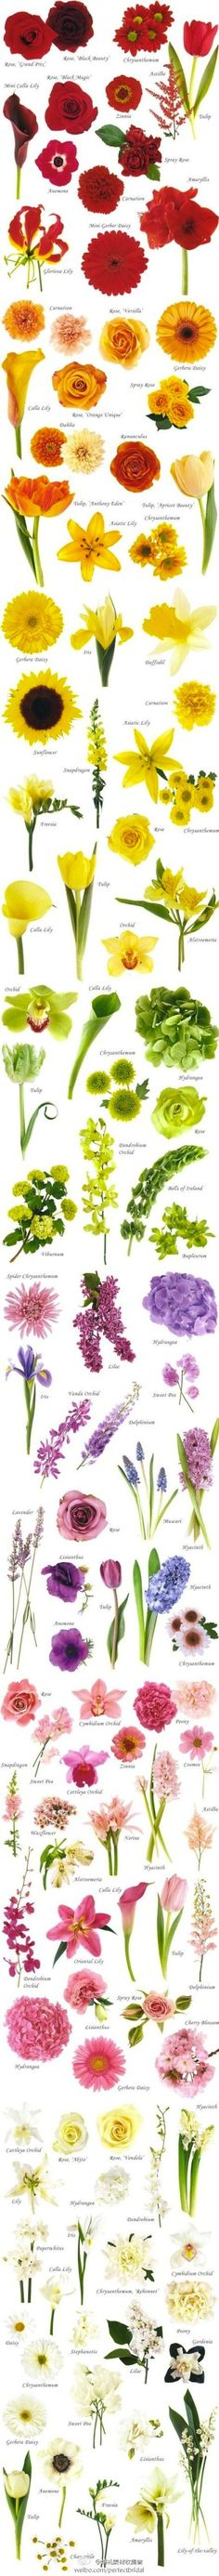 Don't know your carnations from your chrysanthemums? Let this fabulous guide help you to identify your favourite flowers, introduce you to new ones and inspire you to put together your dream bouquet and wedding flower arrangements. If you're feeling ready to approach a florist, pop over to the Flowers, Decor and Styling section of our Directory to ...